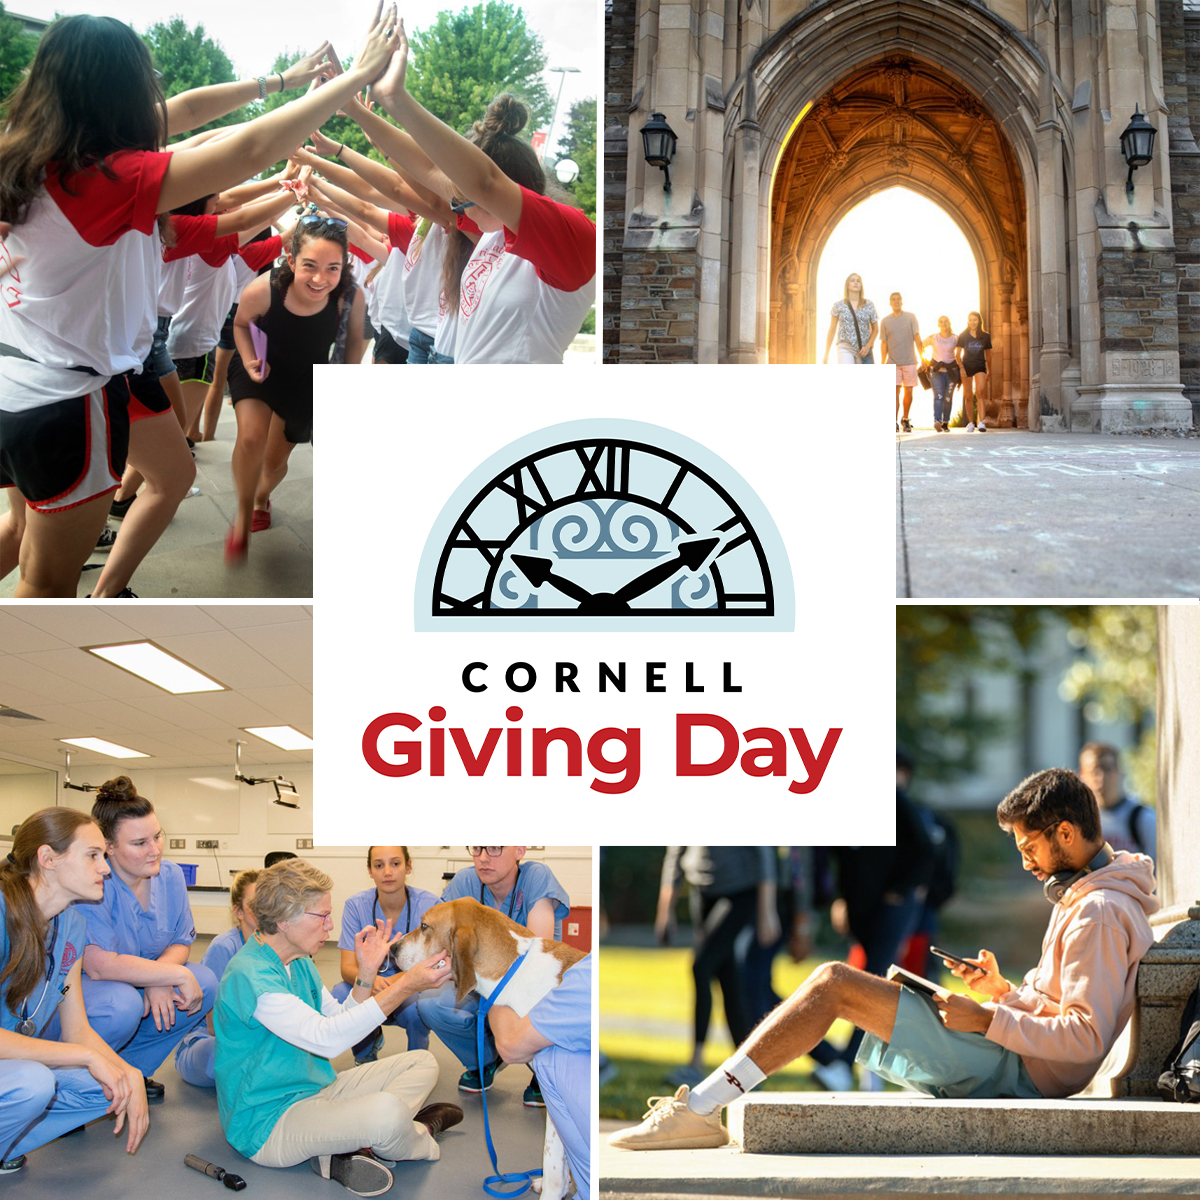 Photo Profile -- collage of campus and students showing Big Red spirit with Cornell Giving Day logo in the center